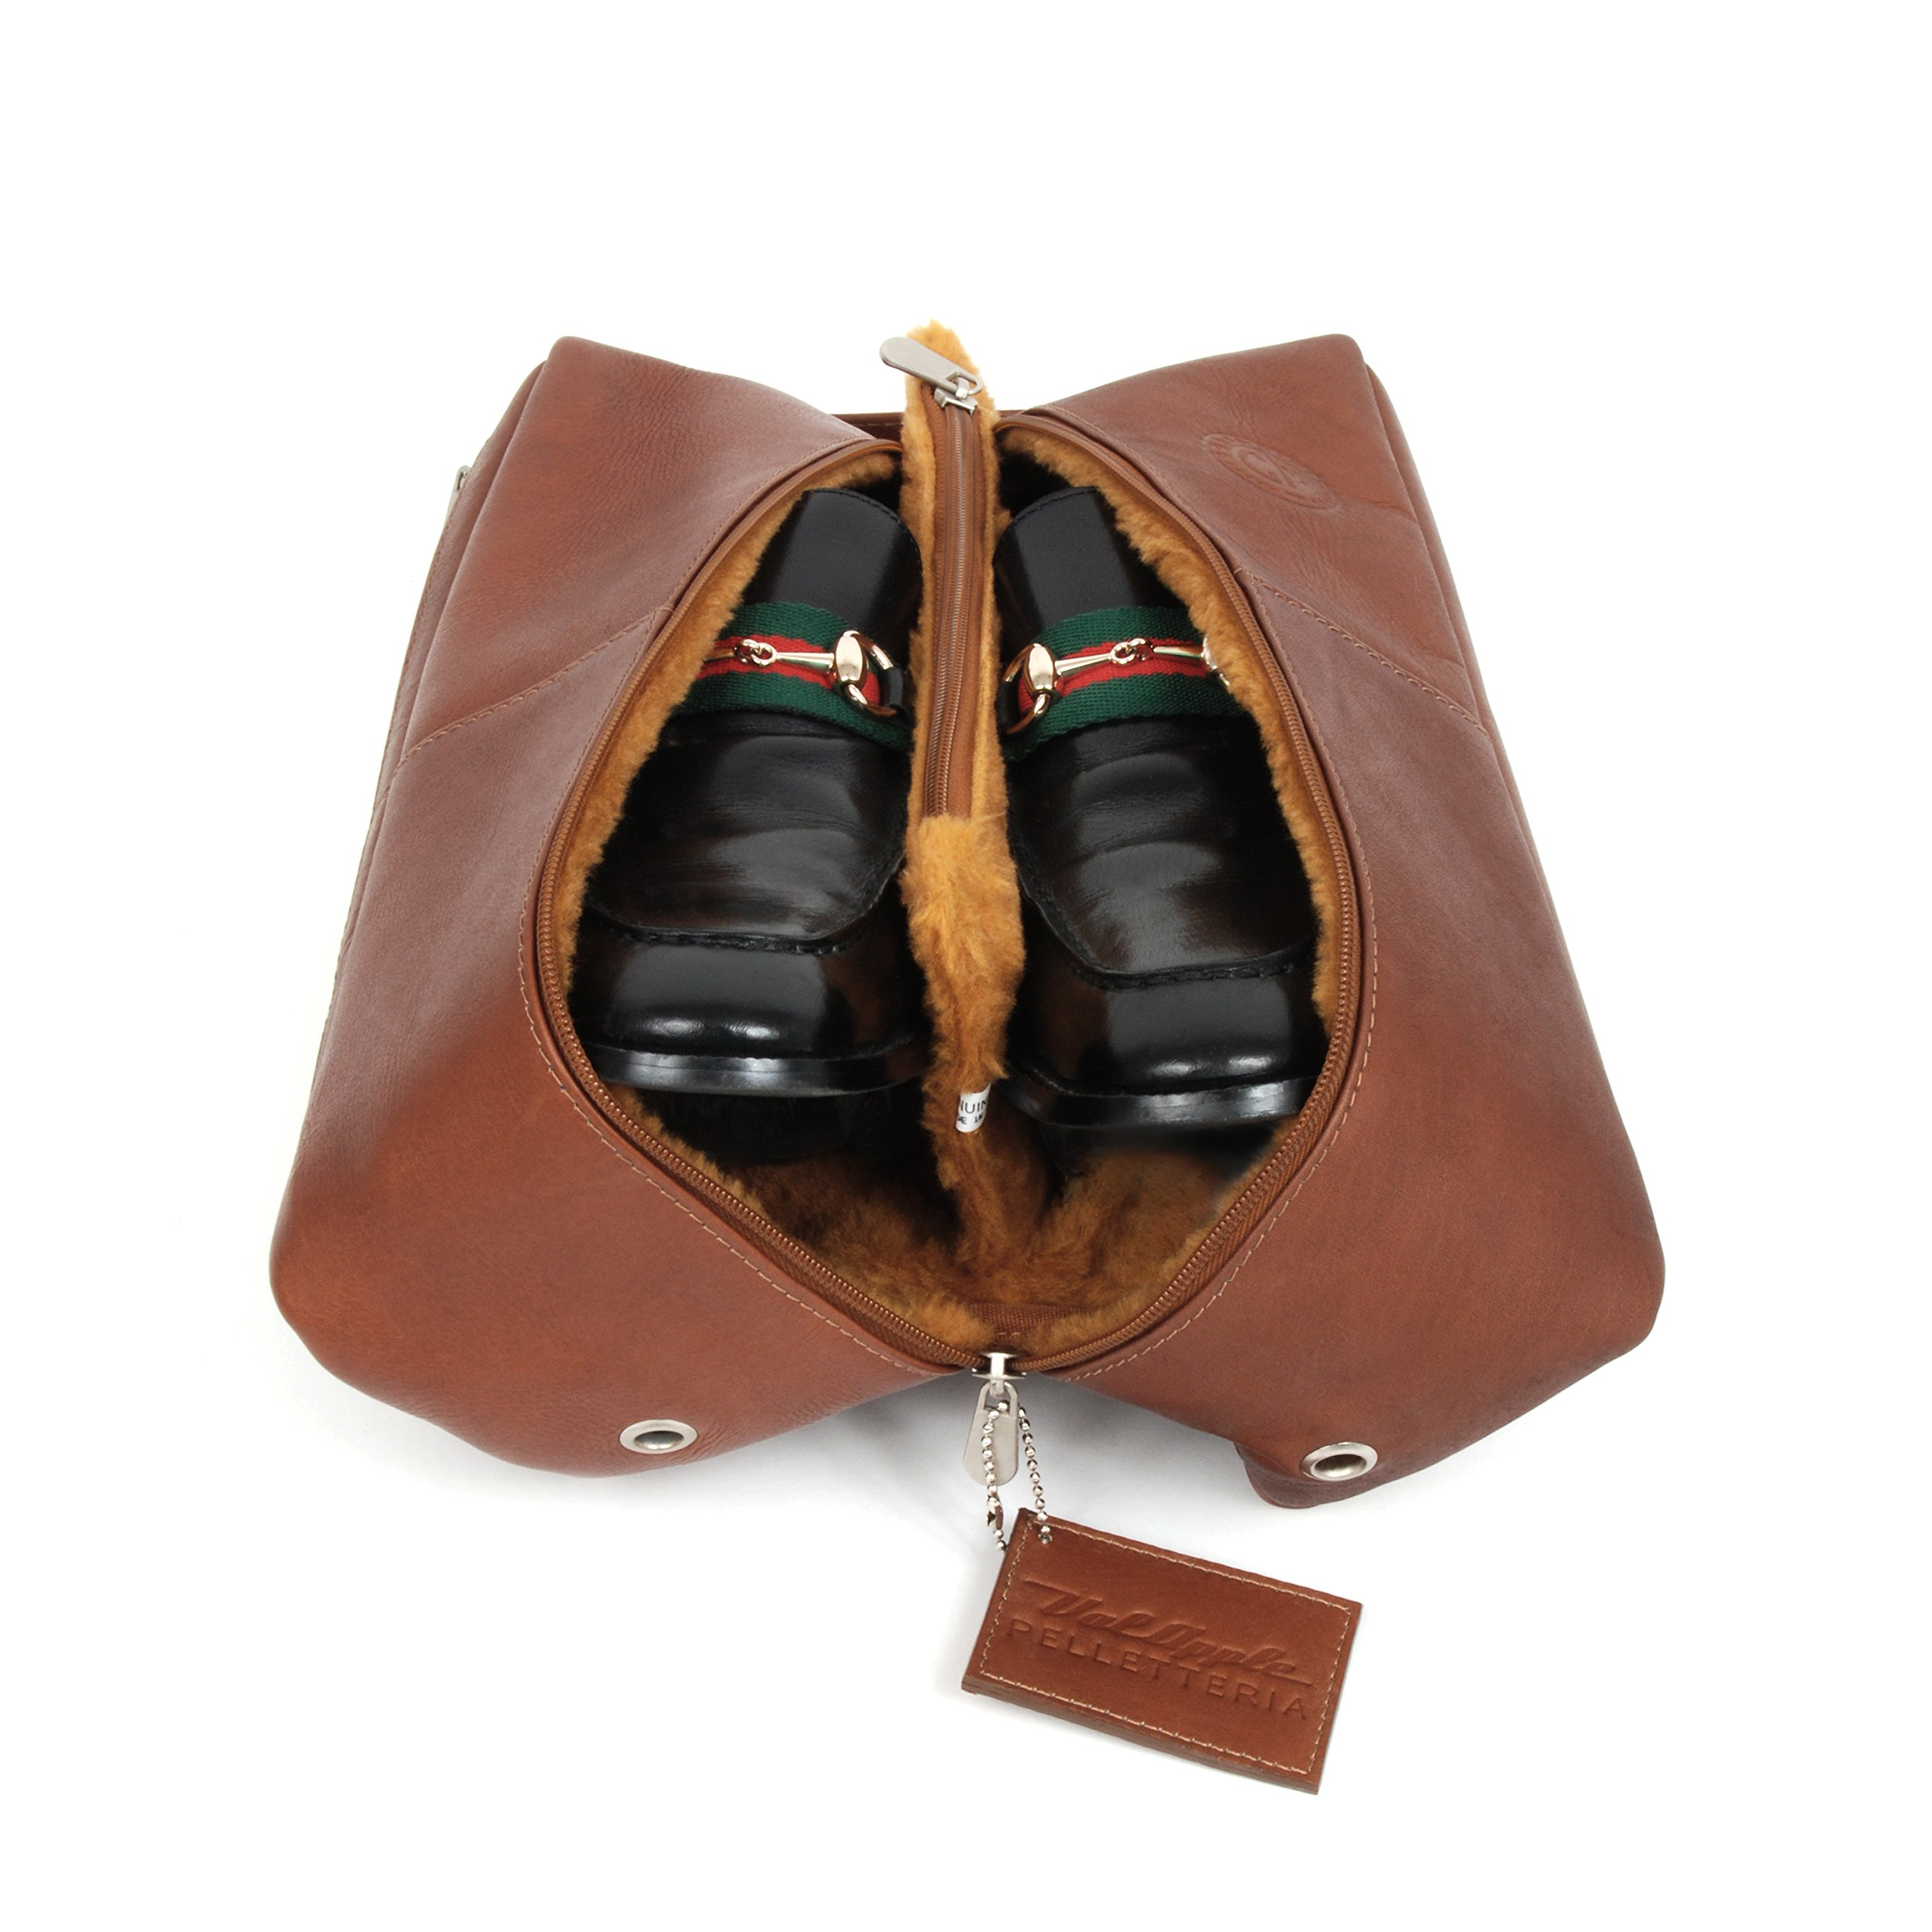 Fiorano Deluxe Leather Golf Shoe Bag